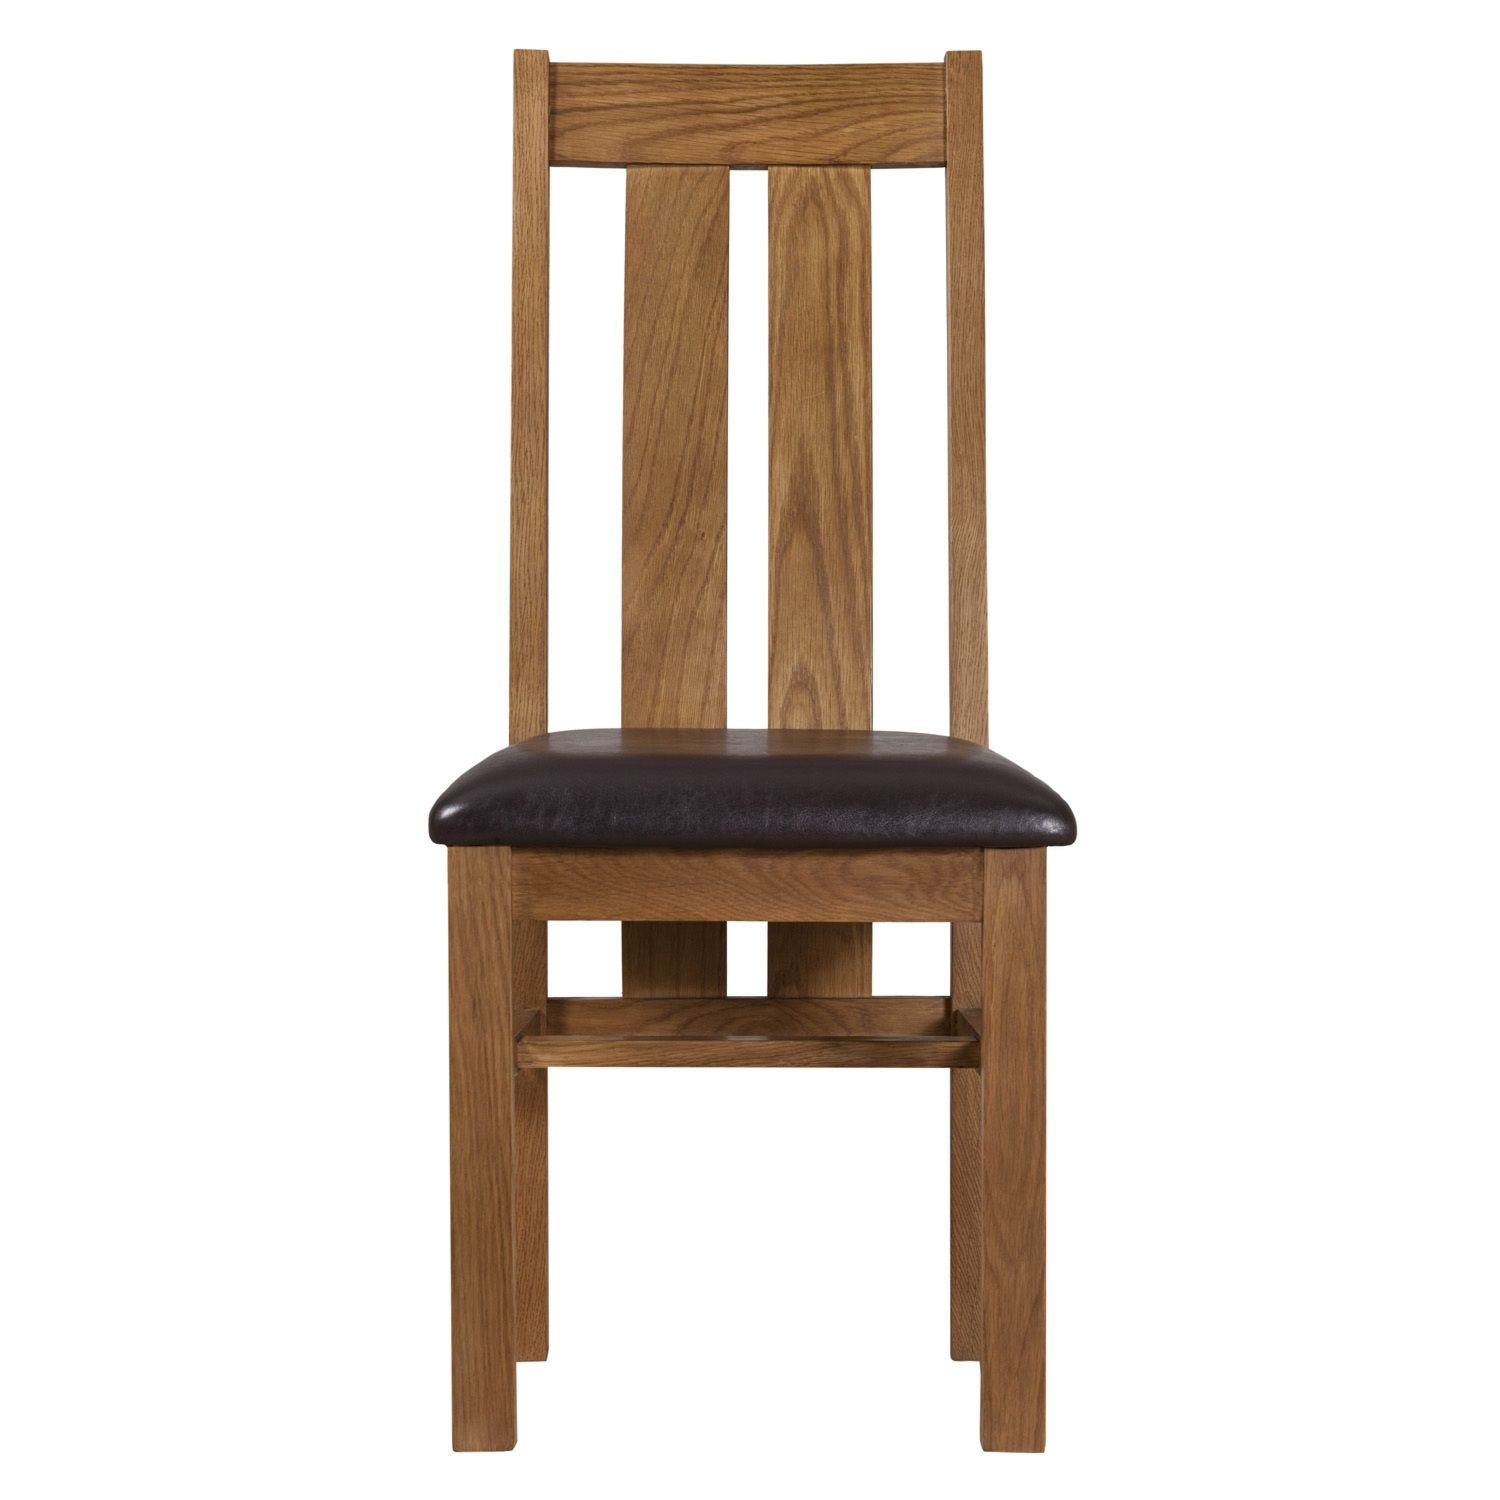 Pair Of Kinsale Arch Back Oak Dining Chairs Oak Dining Chairs Wood Chair Design Dining Chairs